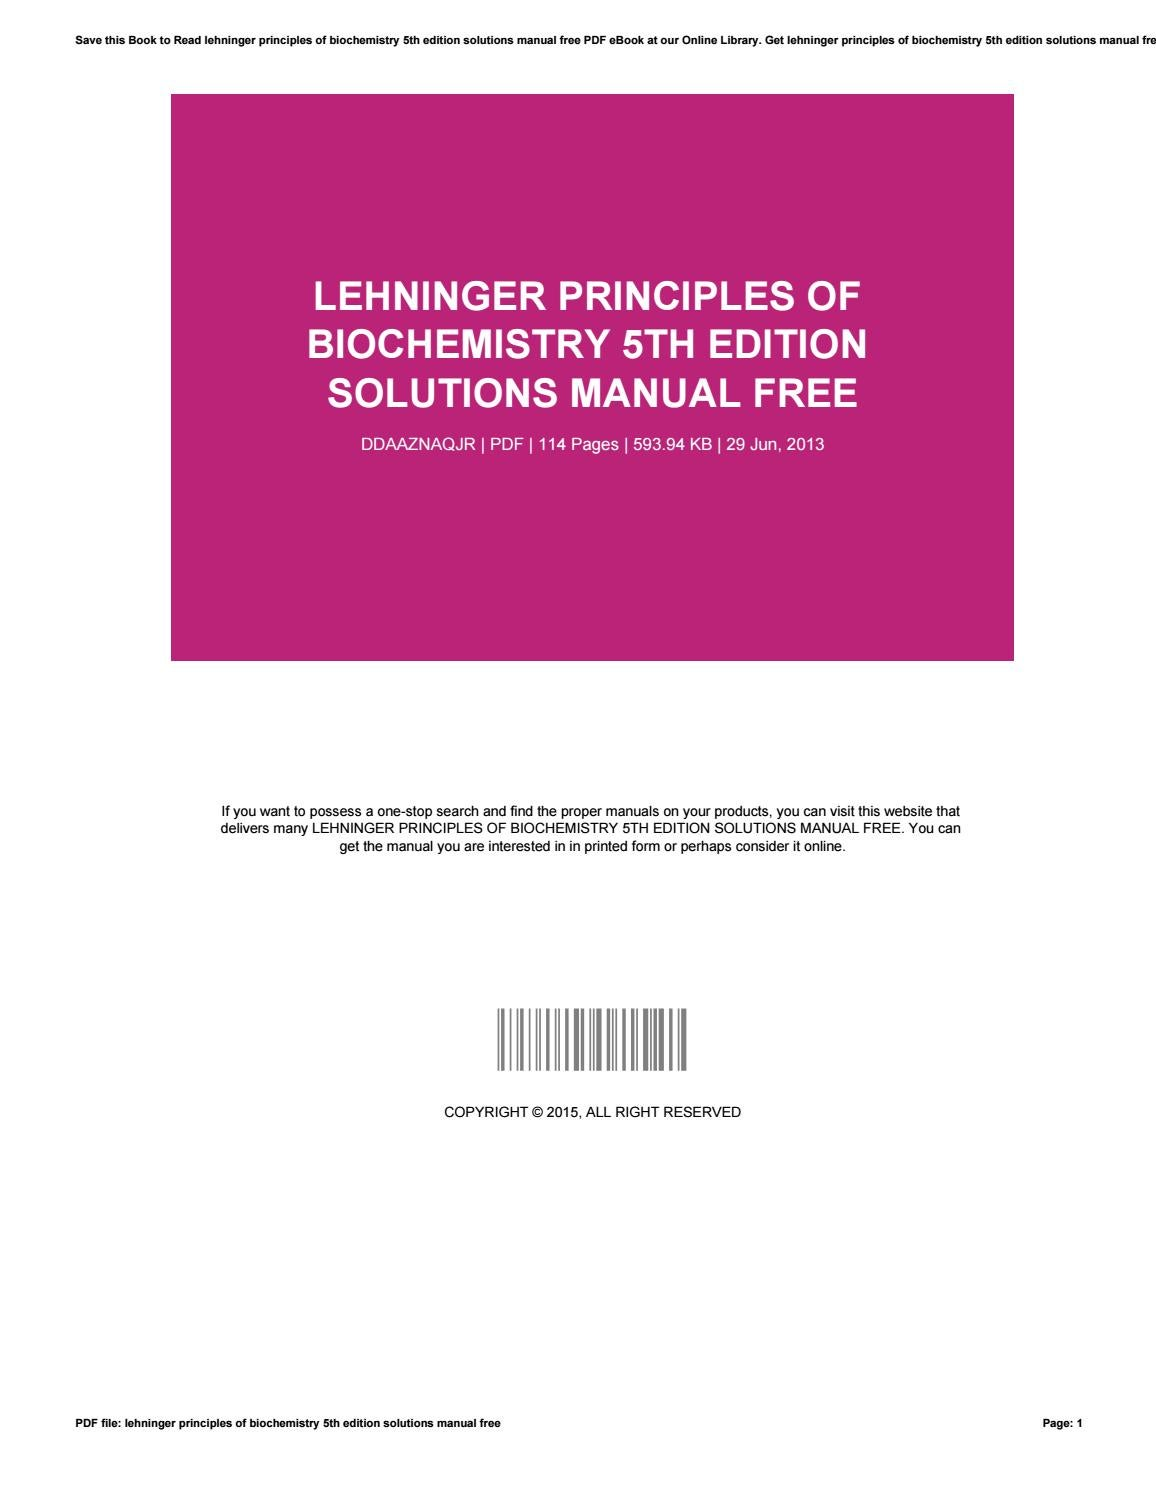 Lehninger principles of biochemistry 5th edition solutions manual free by  mailfs156 - issuu